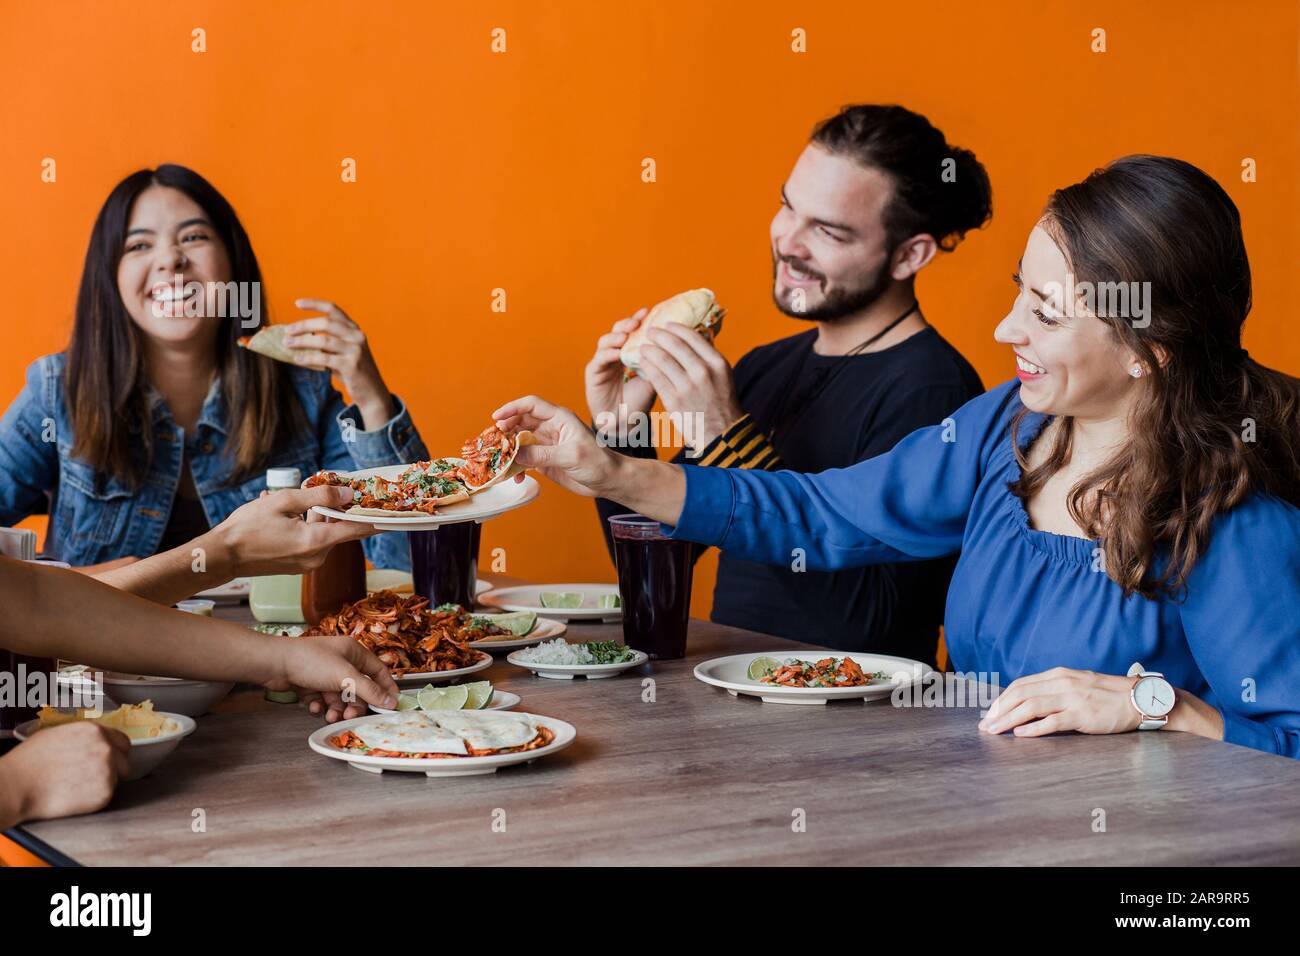 Mexican people eating Tacos al Pastor in a Taqueria in Mexico city Stock Photo